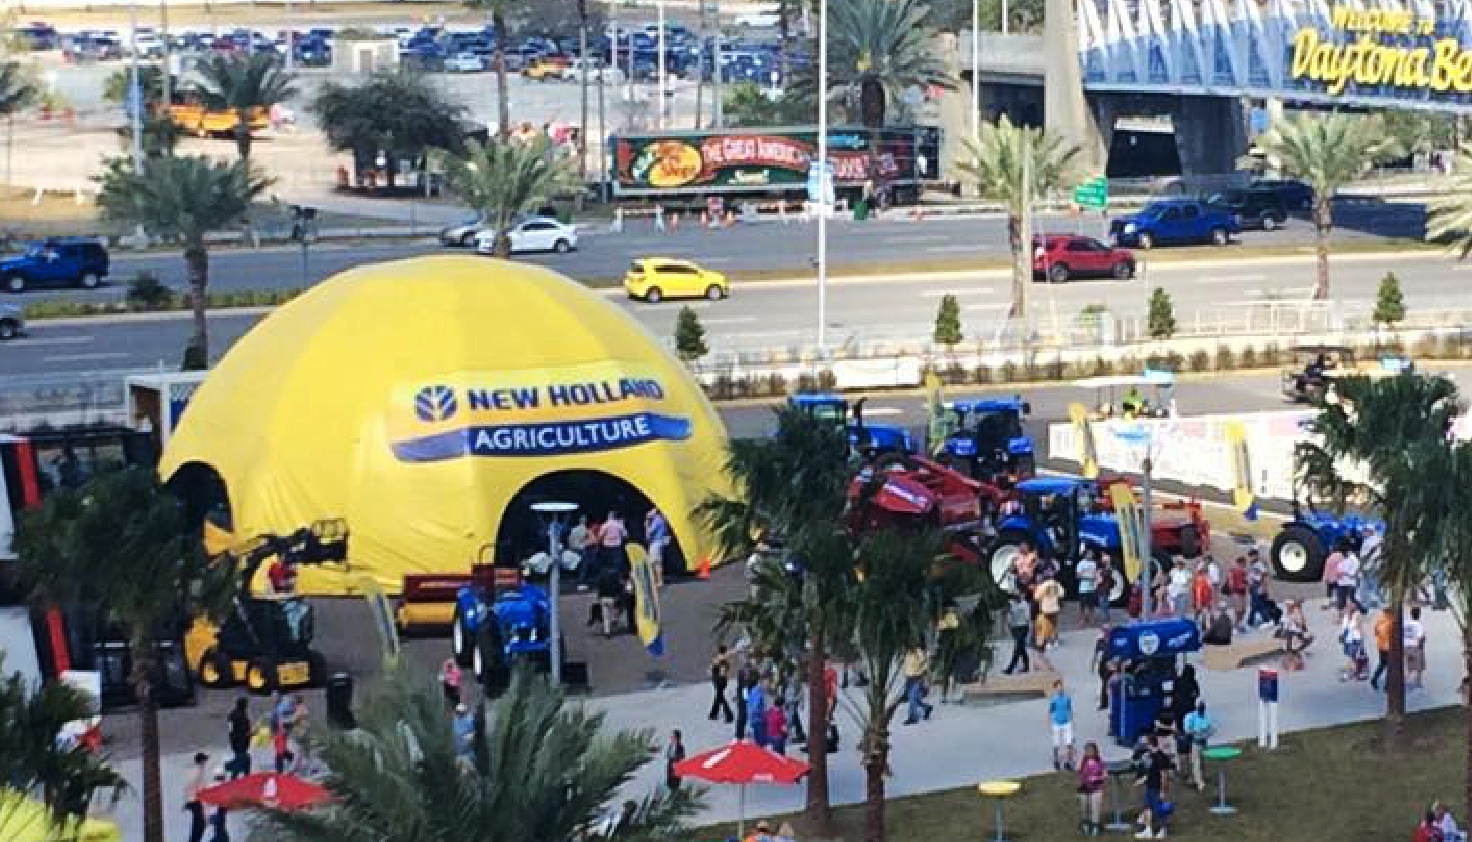 Yellow inflatable dome with a printed cover for New Holland Agriculture